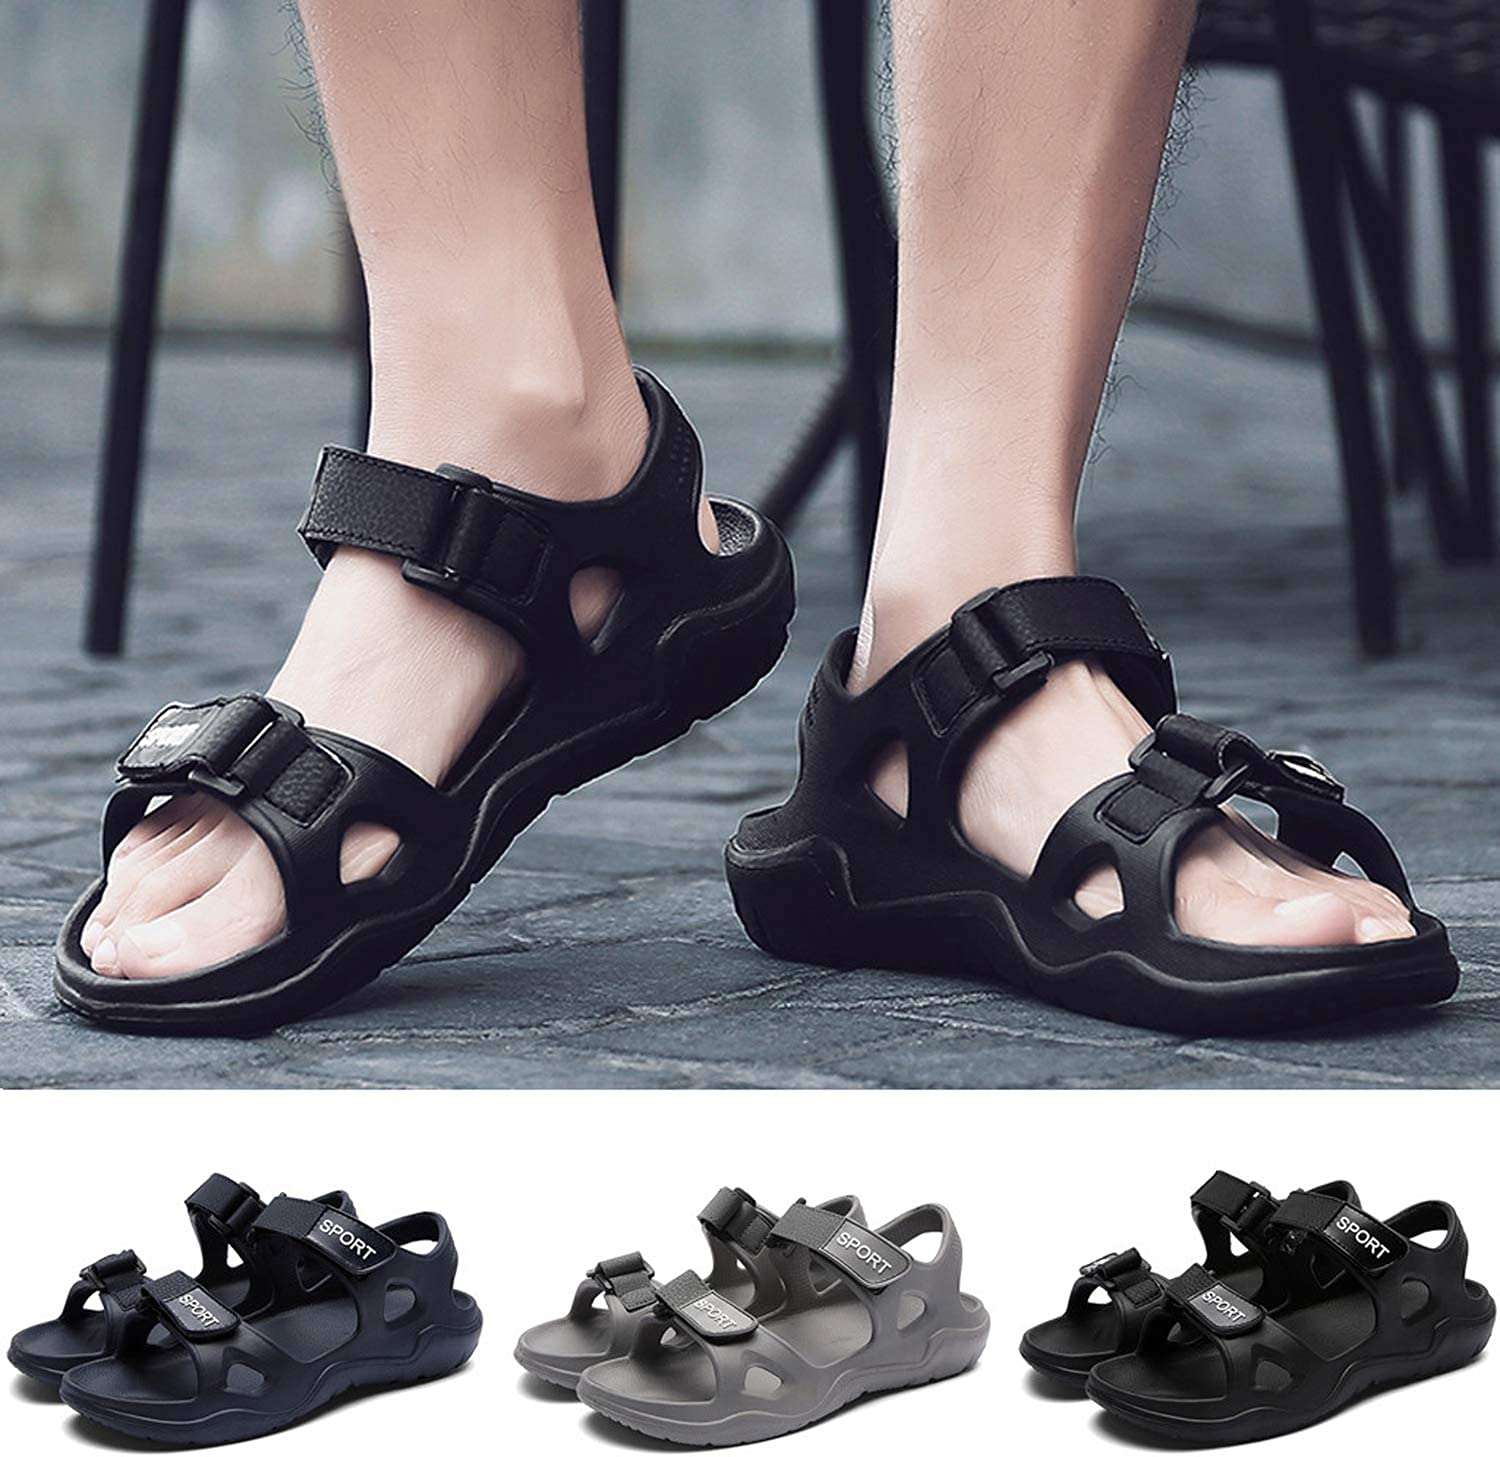 2019 New Male Shoes PU Leather Men Sandals Summer Men Shoes Beach Sandals,Gray,9.5,United States